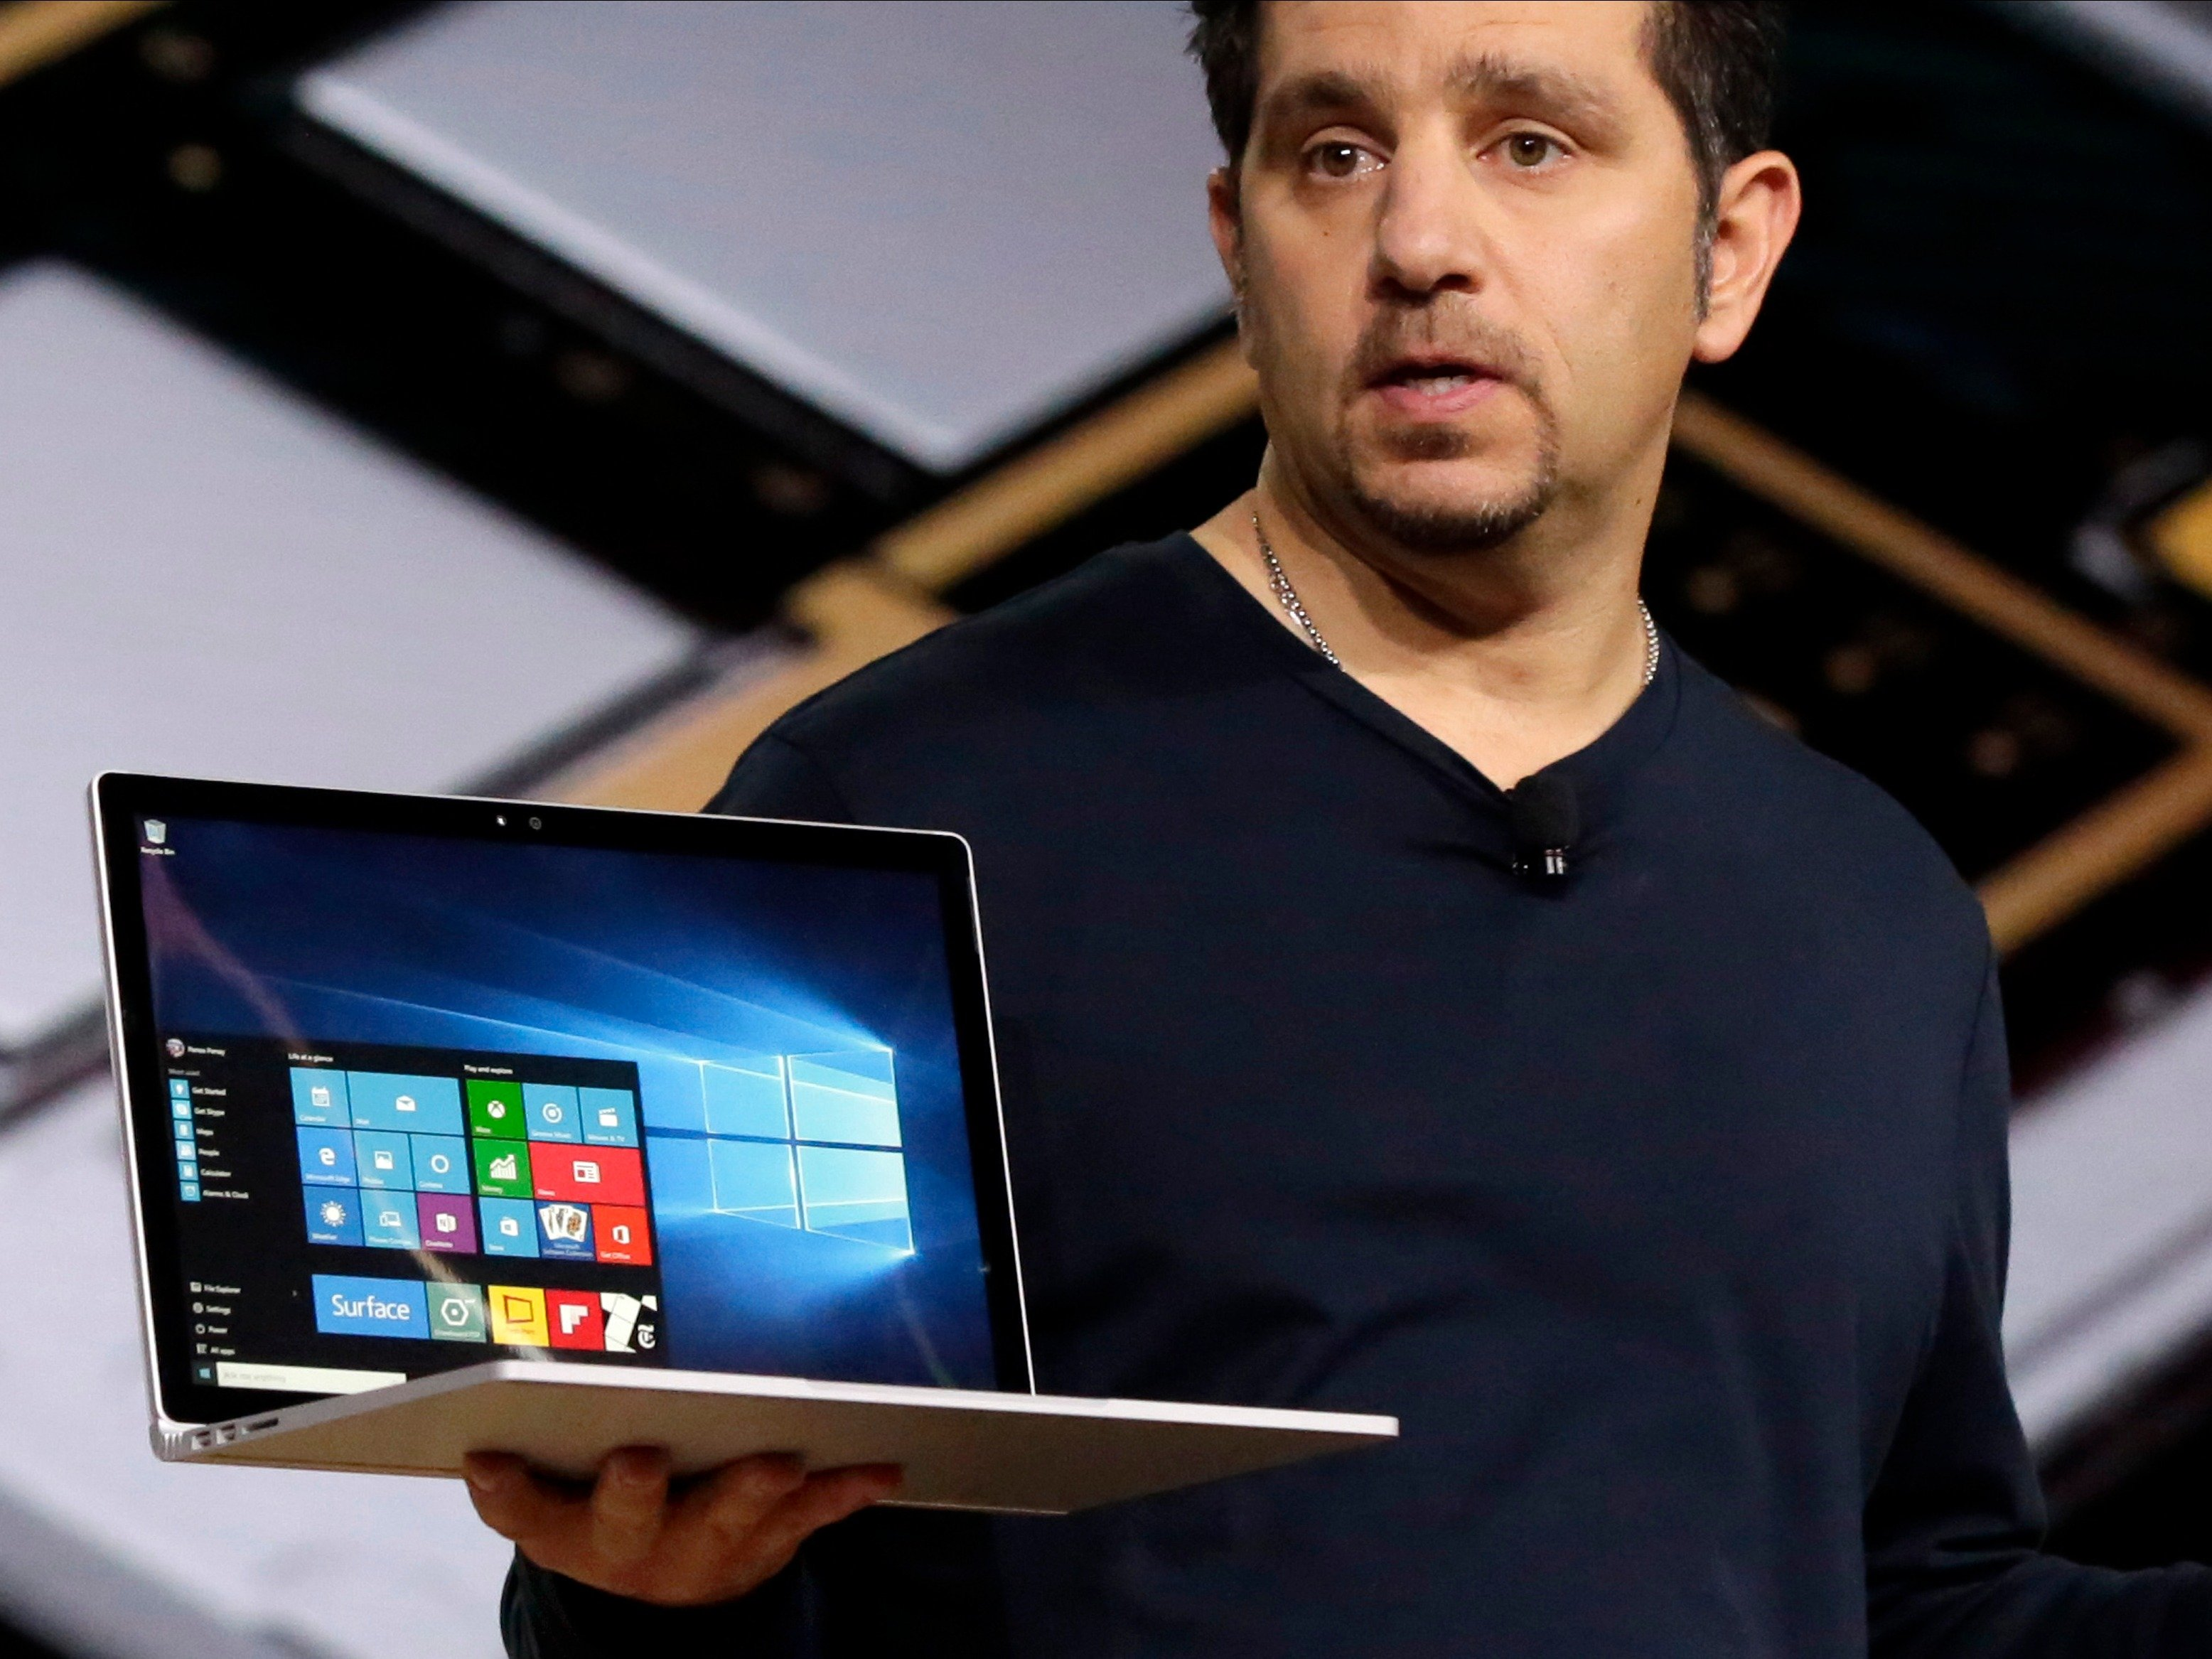 Microsoft-New-Devices-Surface-book-laptops|Window10-For-Phones